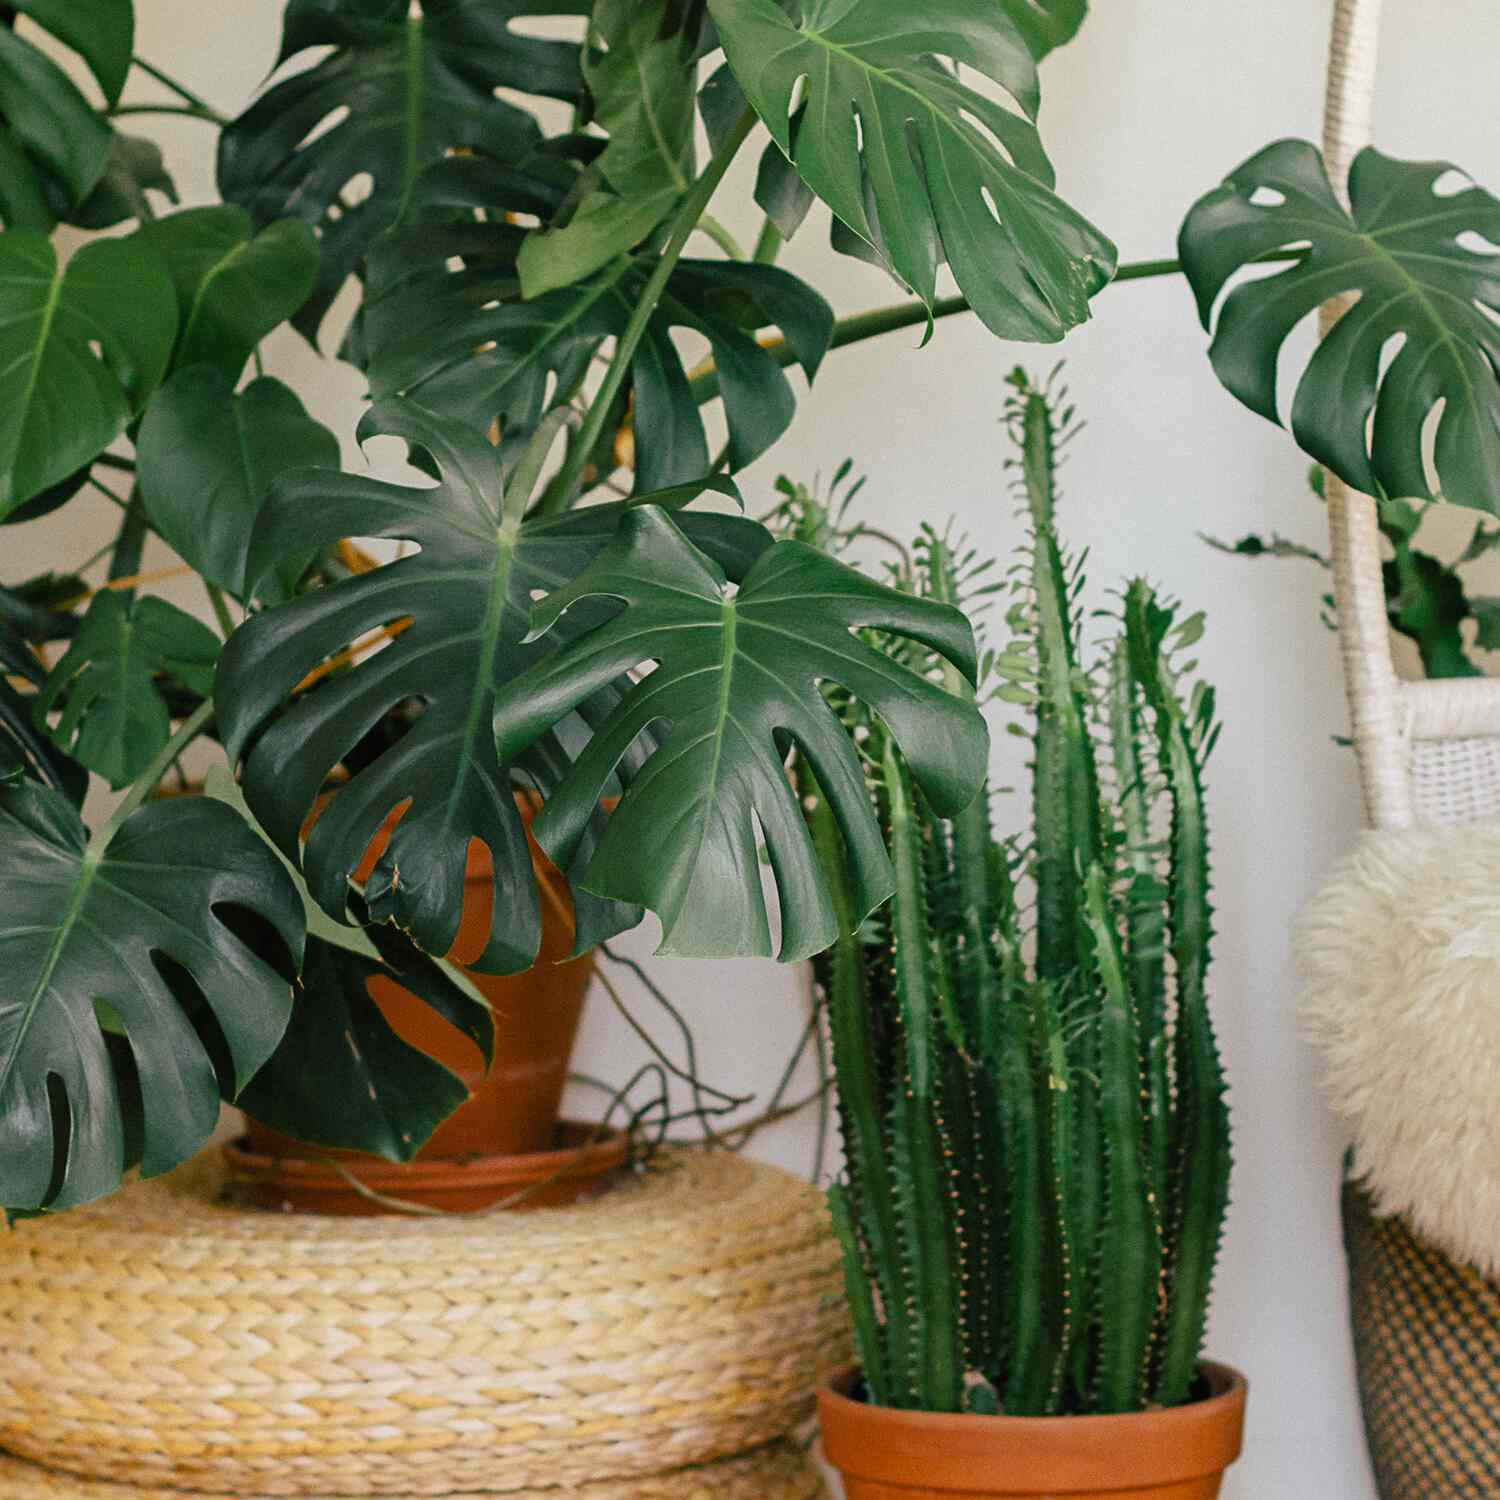 The 15 Best Plants For Bedrooms To Help You Sleep Better